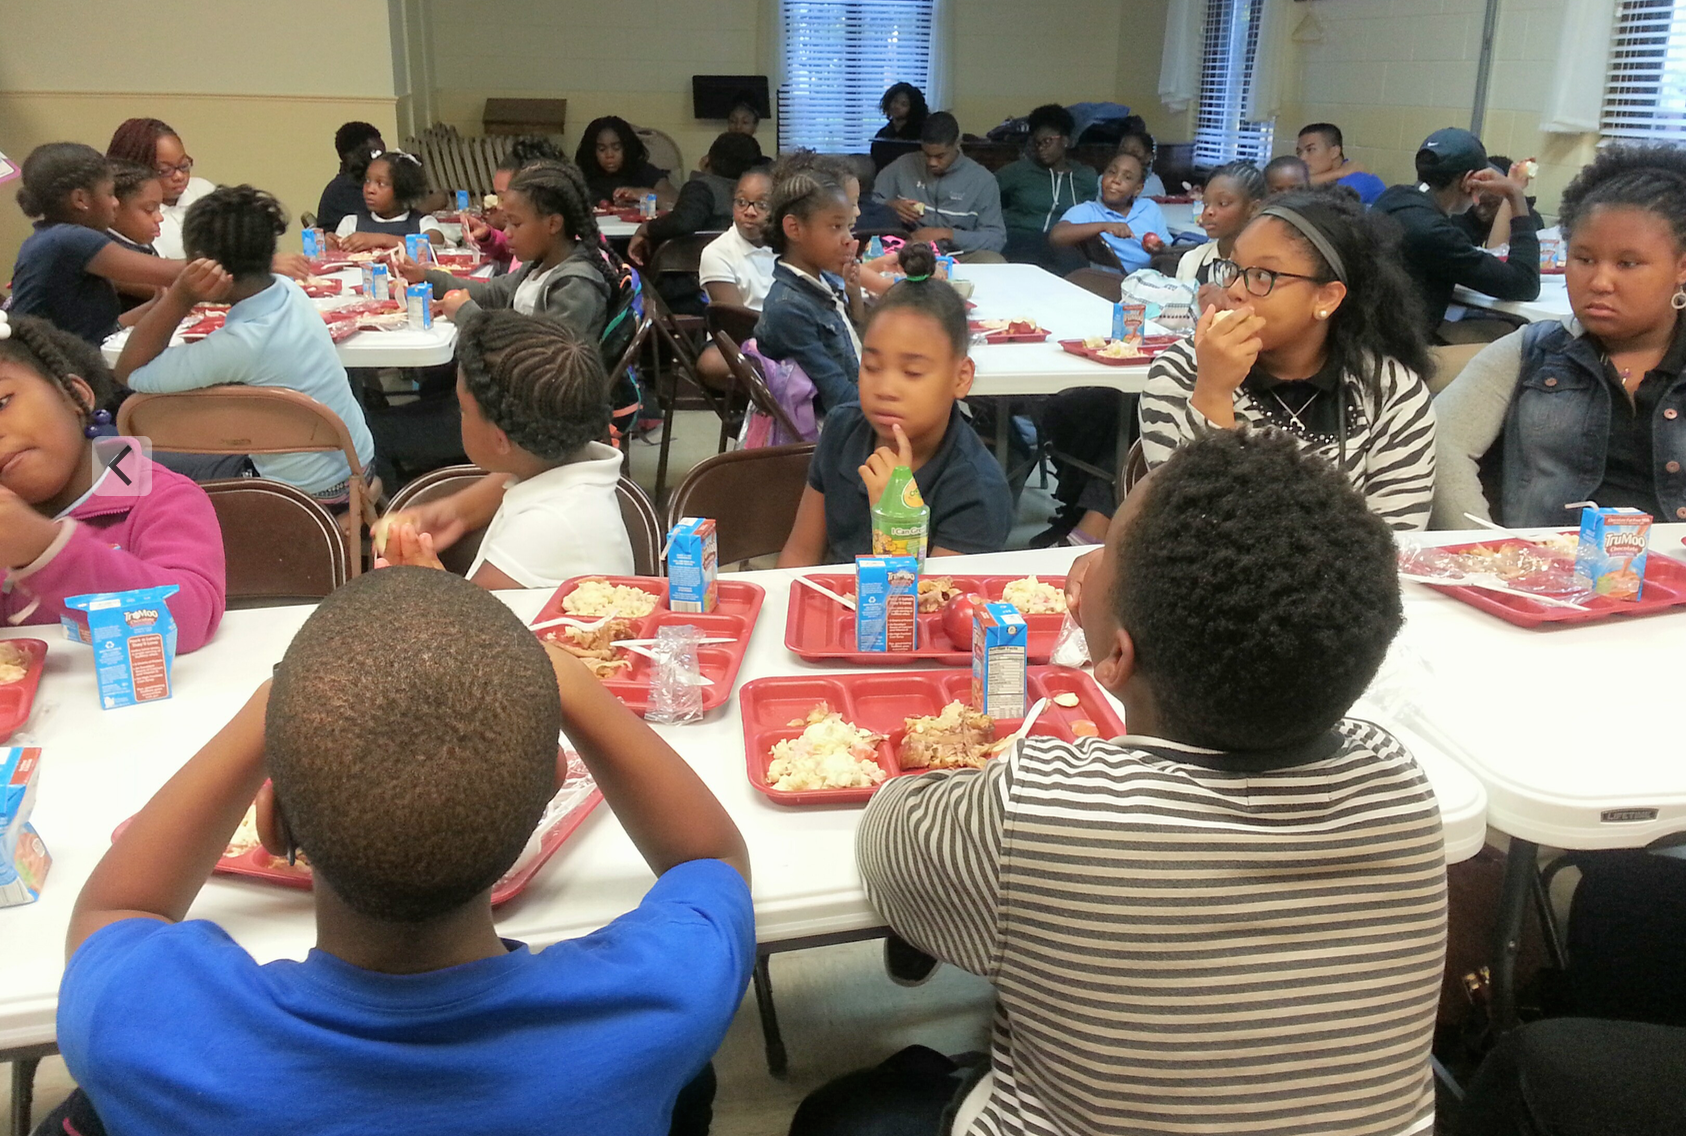 Petersburg Recreation in partnership with the Virginia Food Bank